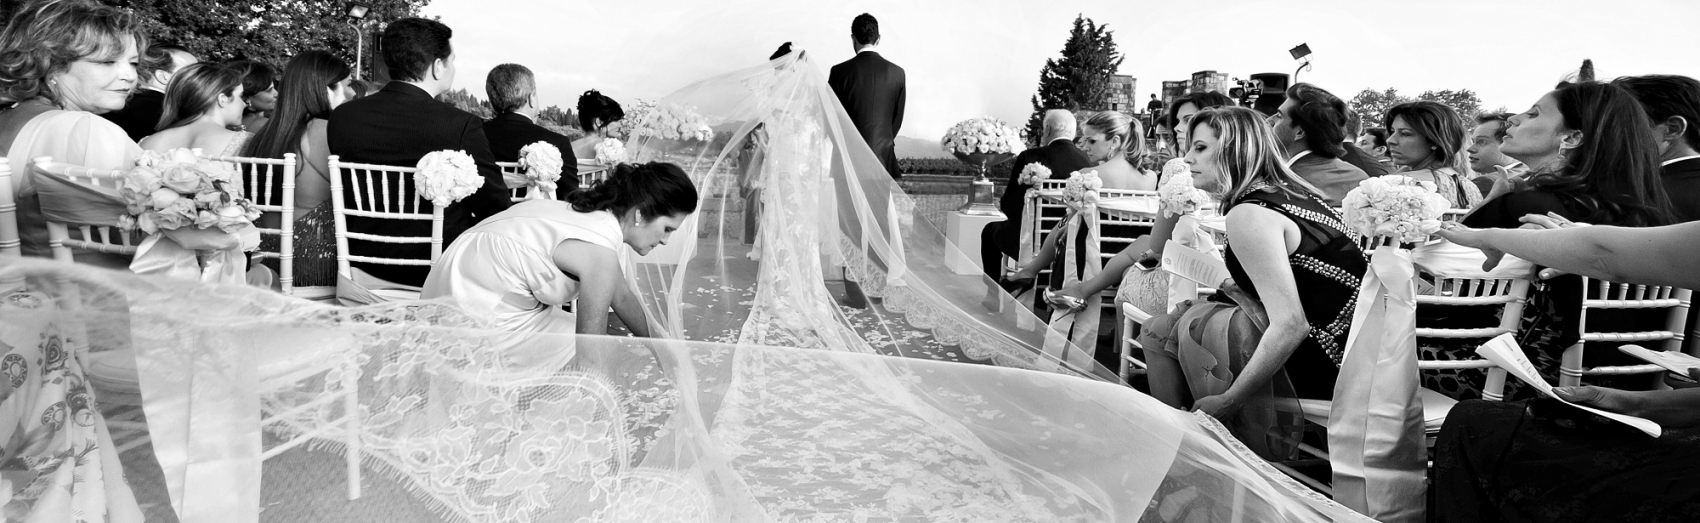 weddings-in-italy123